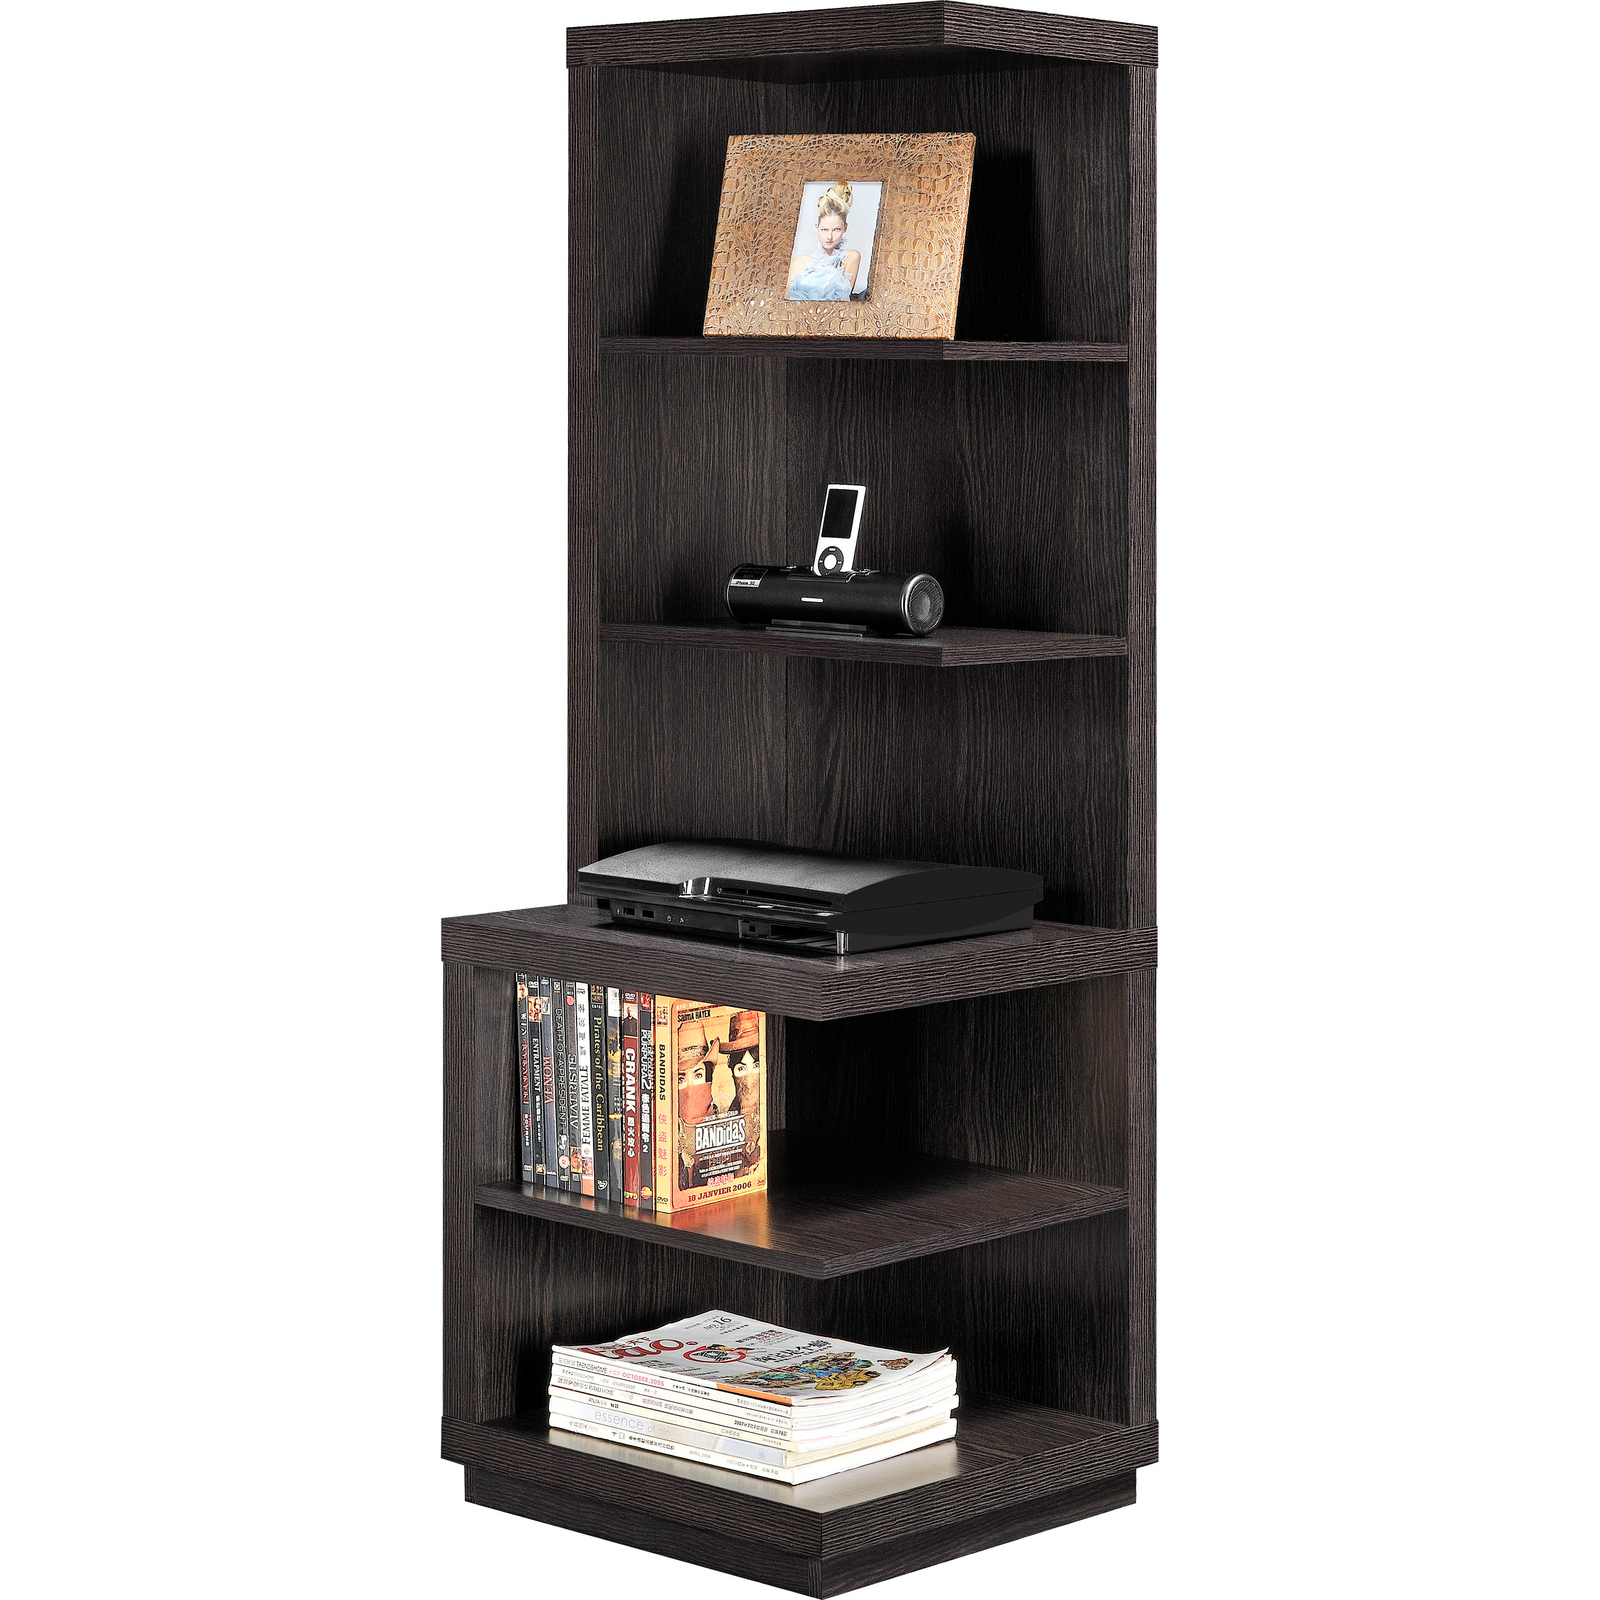 Corner shelf bookcase brown wood 5 shelves book storage for Room furniture organizer